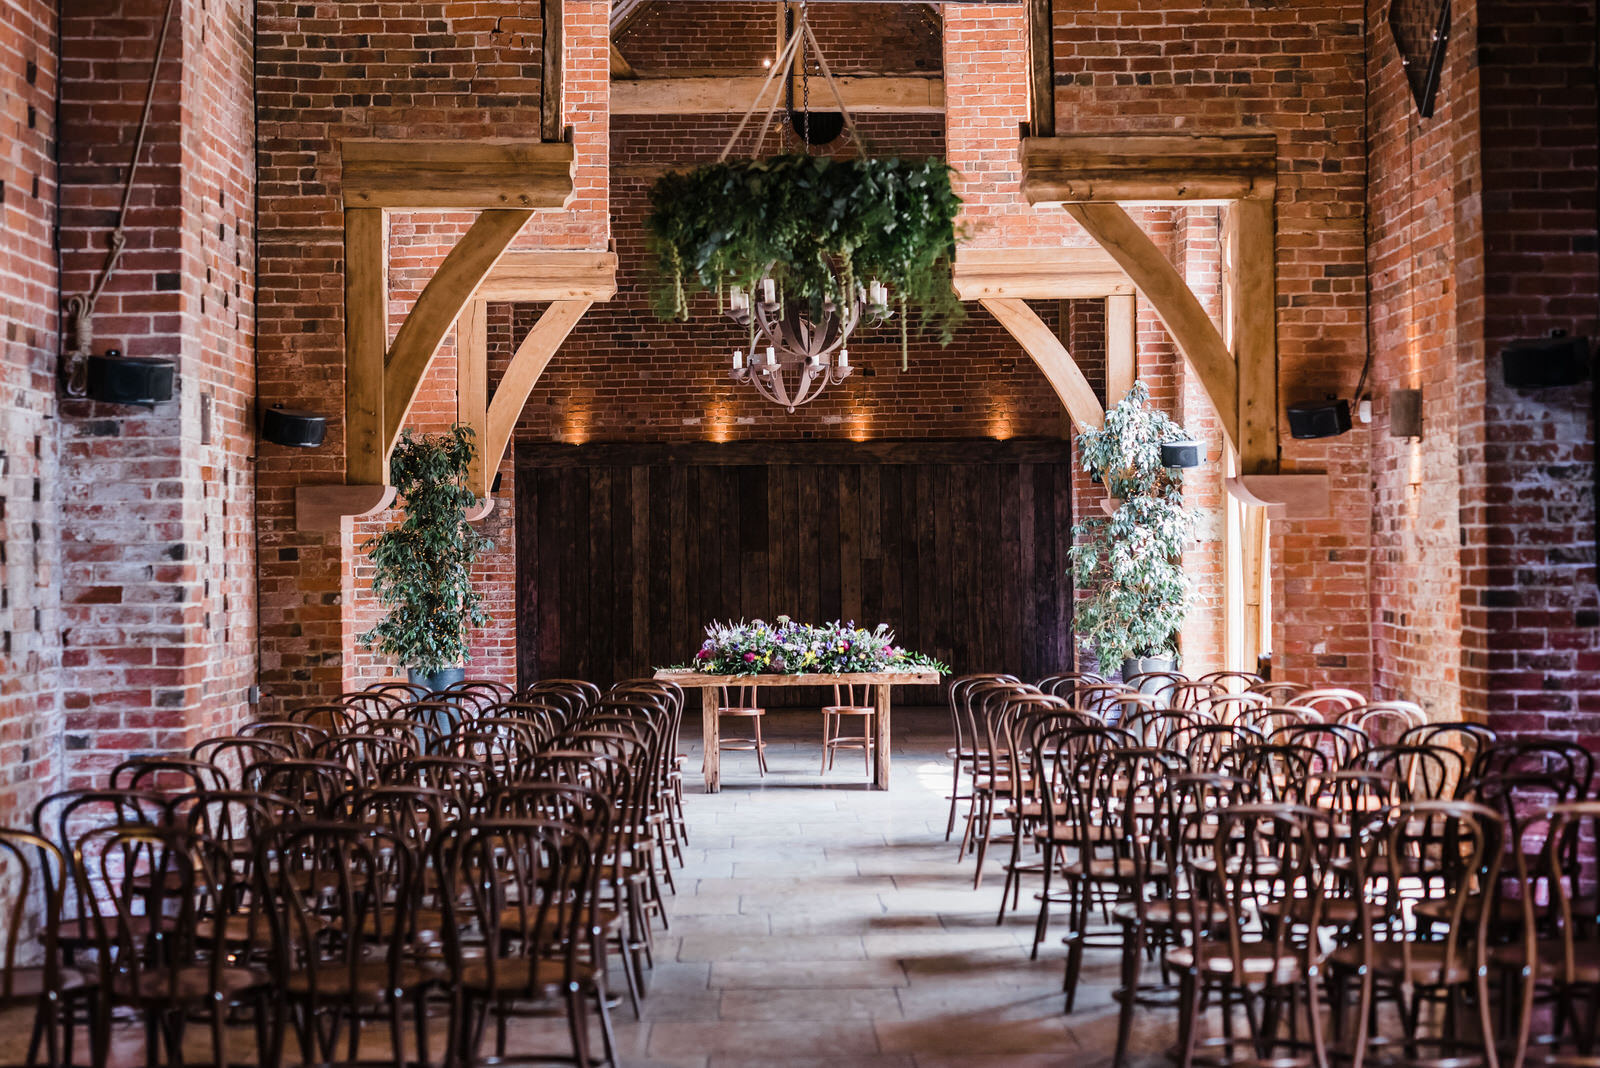 Shustoke Barn - Sue Ann Simon Photography - 21.07.18 - Sarah & Steve -  -120shustoke+barn+warwickshire+wedding+venue.jpg